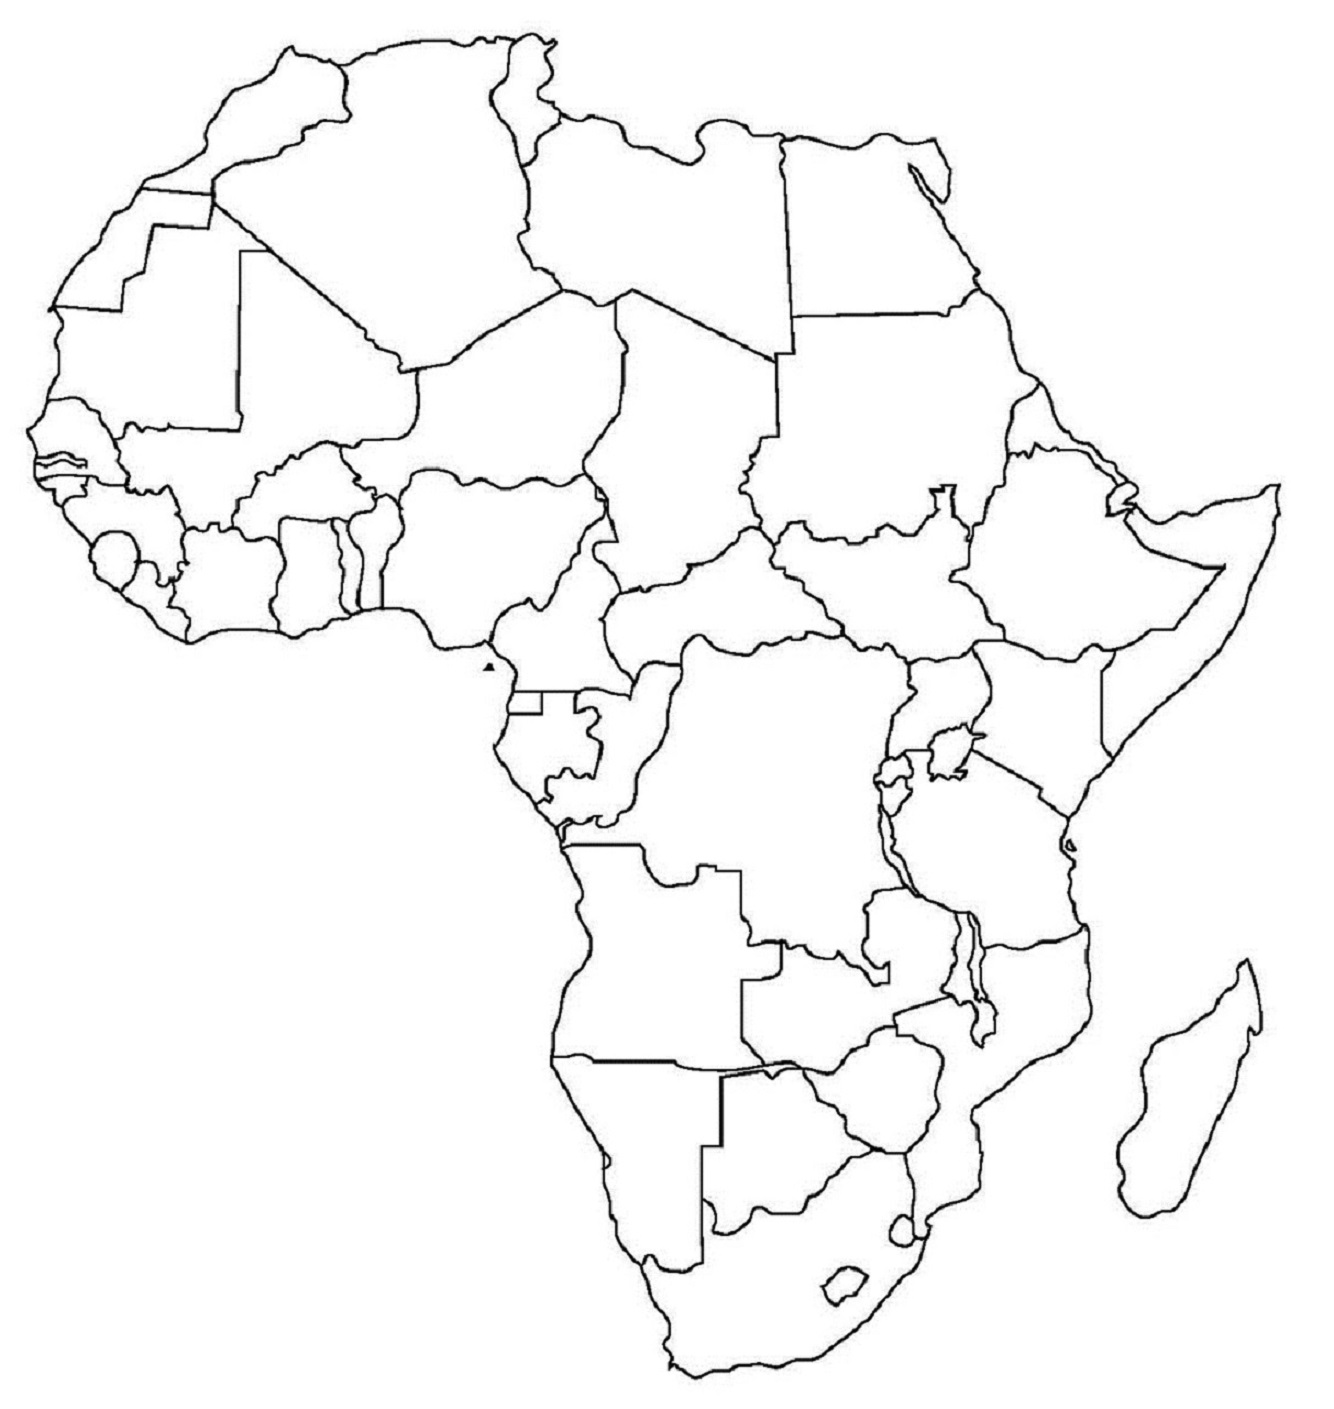 Outline Map Of Africa Printable.Outline Map Of Africa Printable Jackenjuul